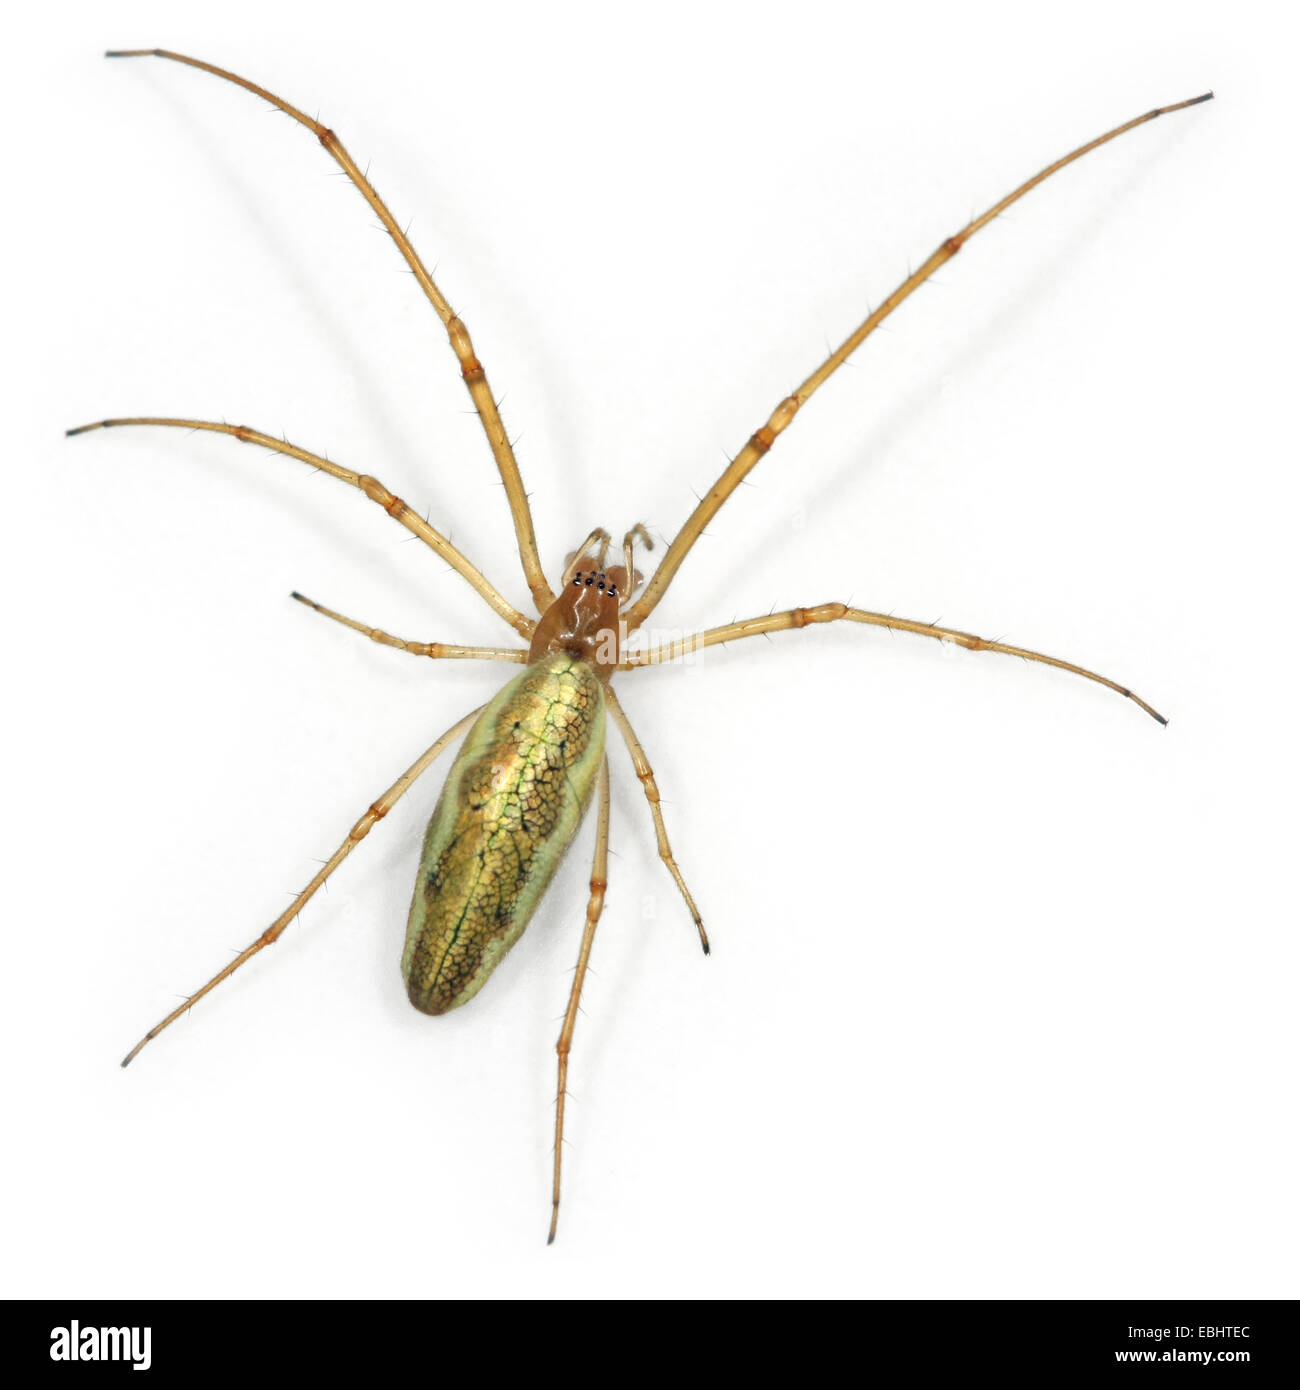 A female Common Stretch-spider (Tetragnatha extensa), on a white background, part of family Tetragnathidae - Long - Stock Image